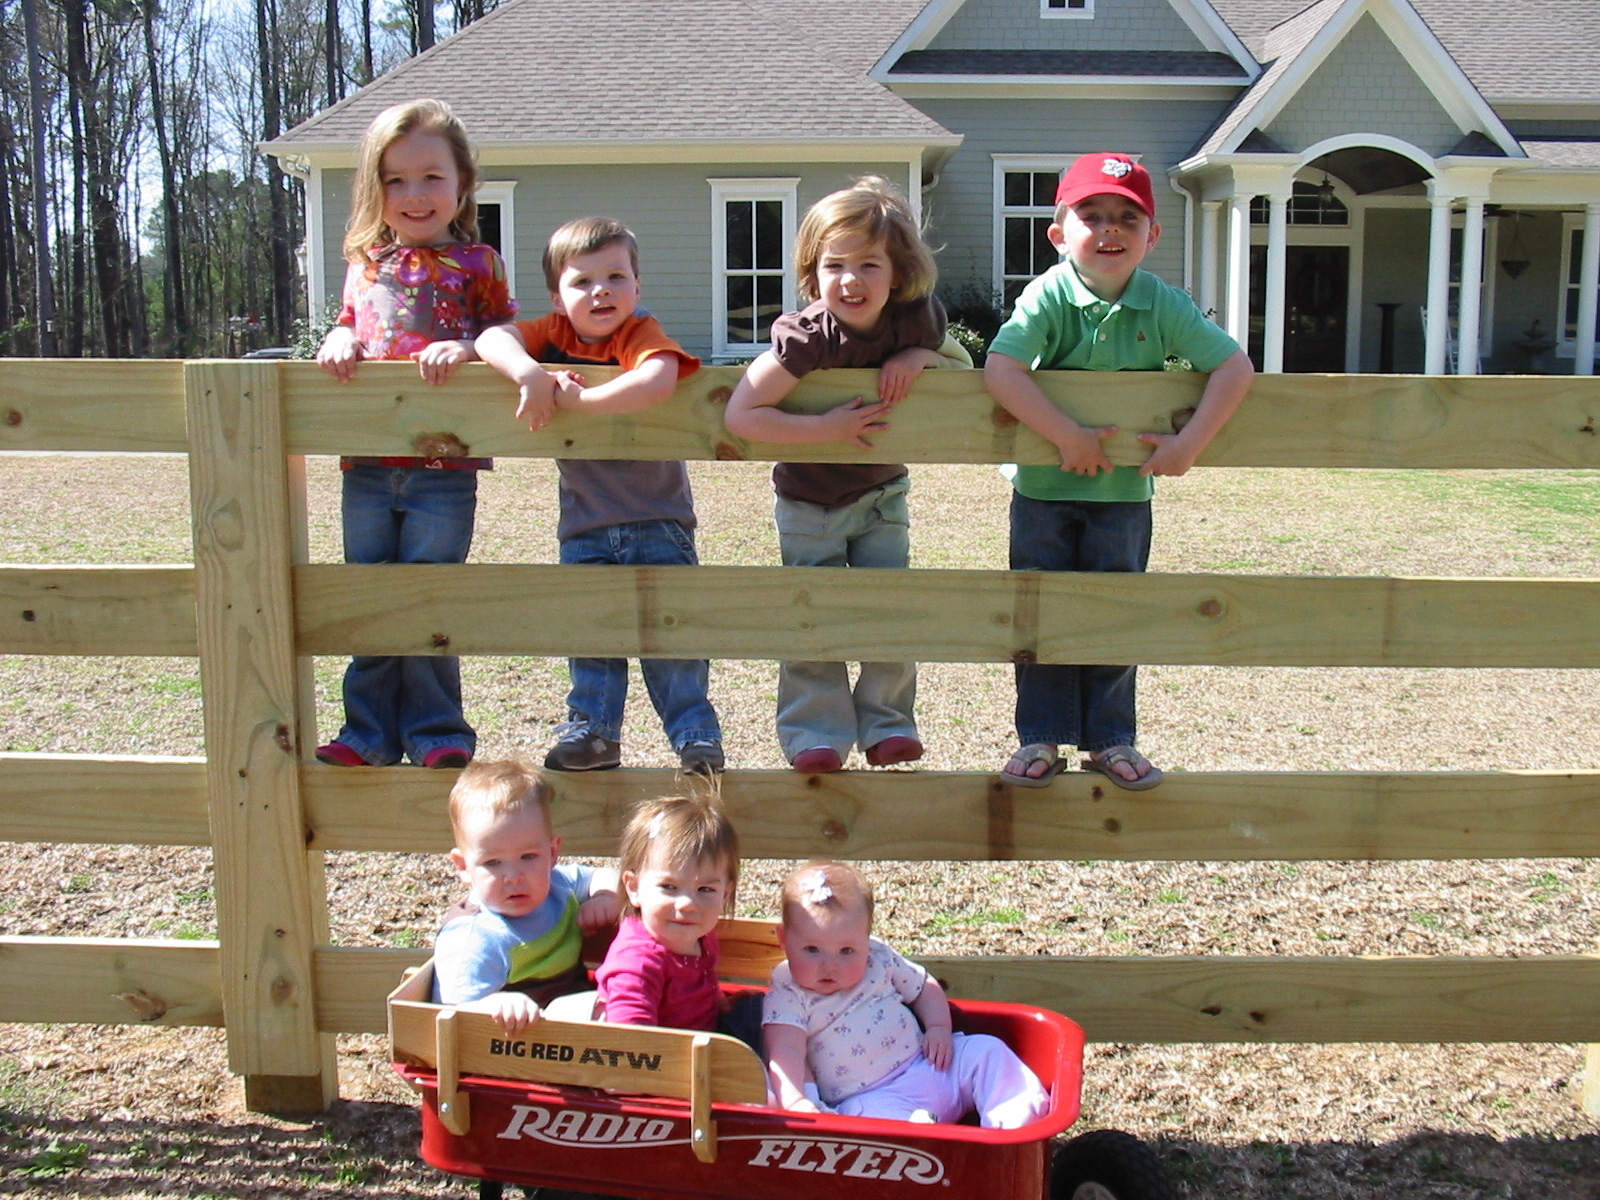 All SEVEN cousins at Sweetie and PawPaw's house on their new fence